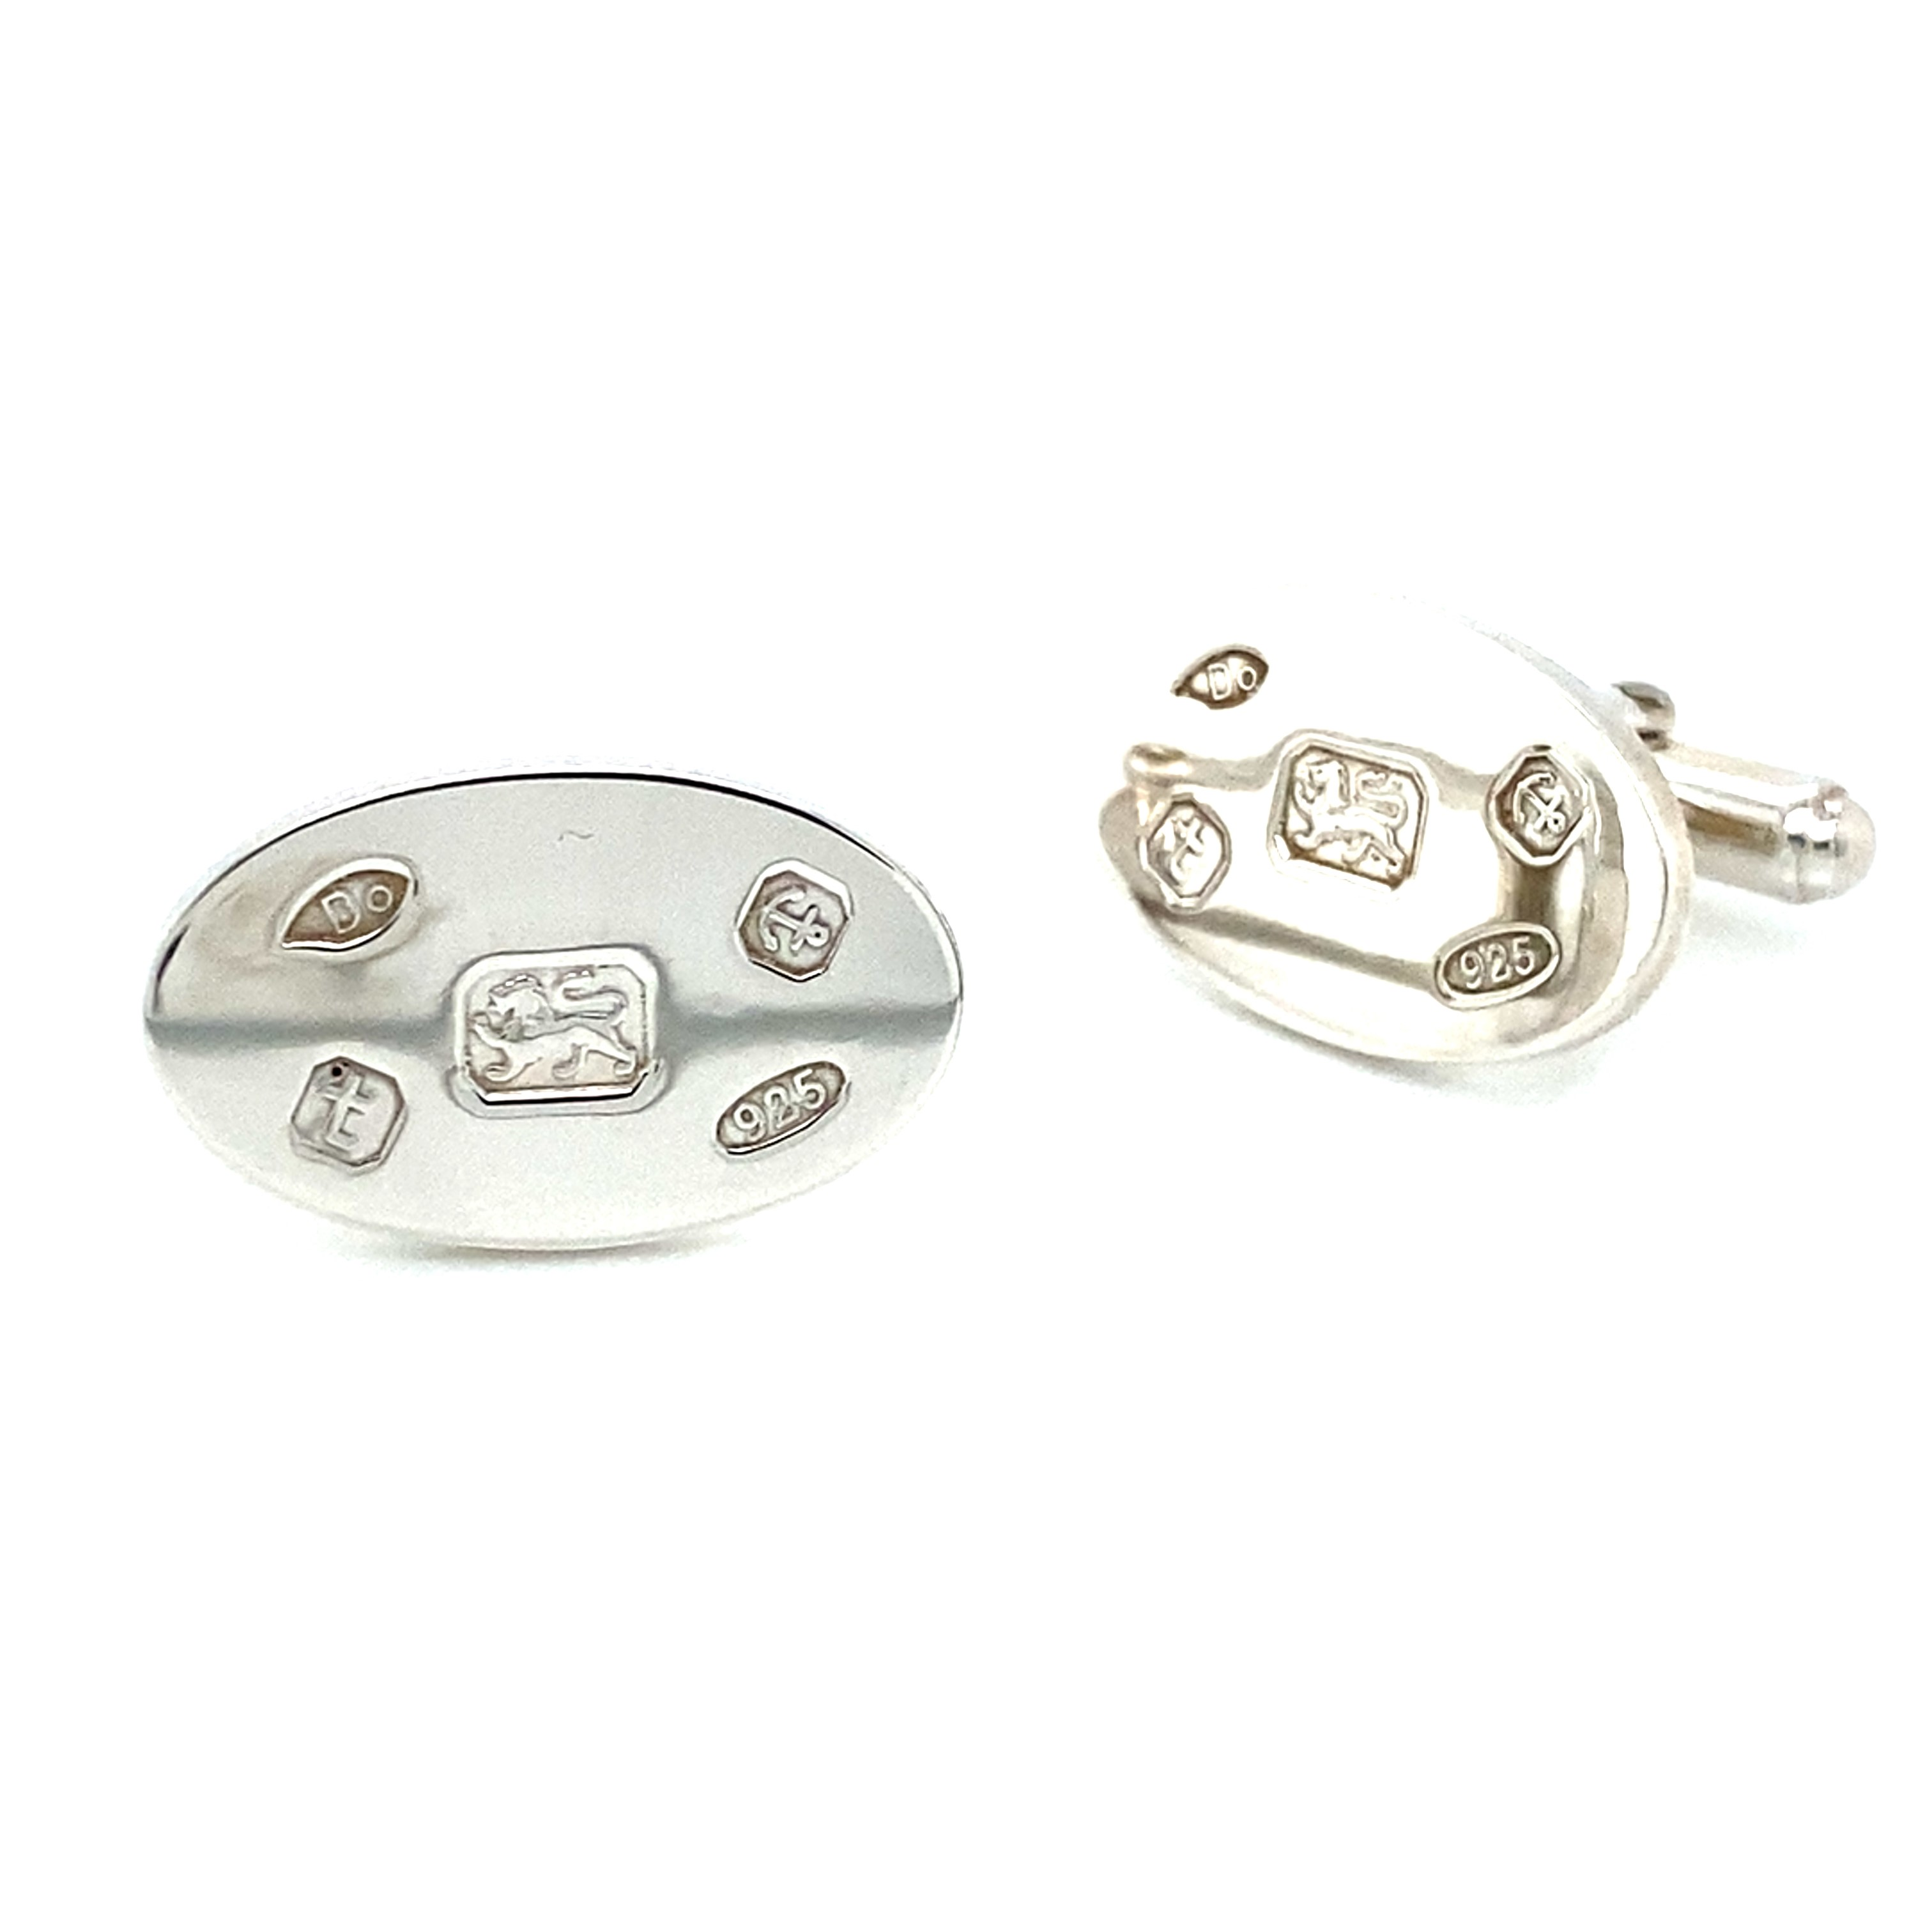 Sterling Silver Oval Cufflinks with Feature Hallmarks